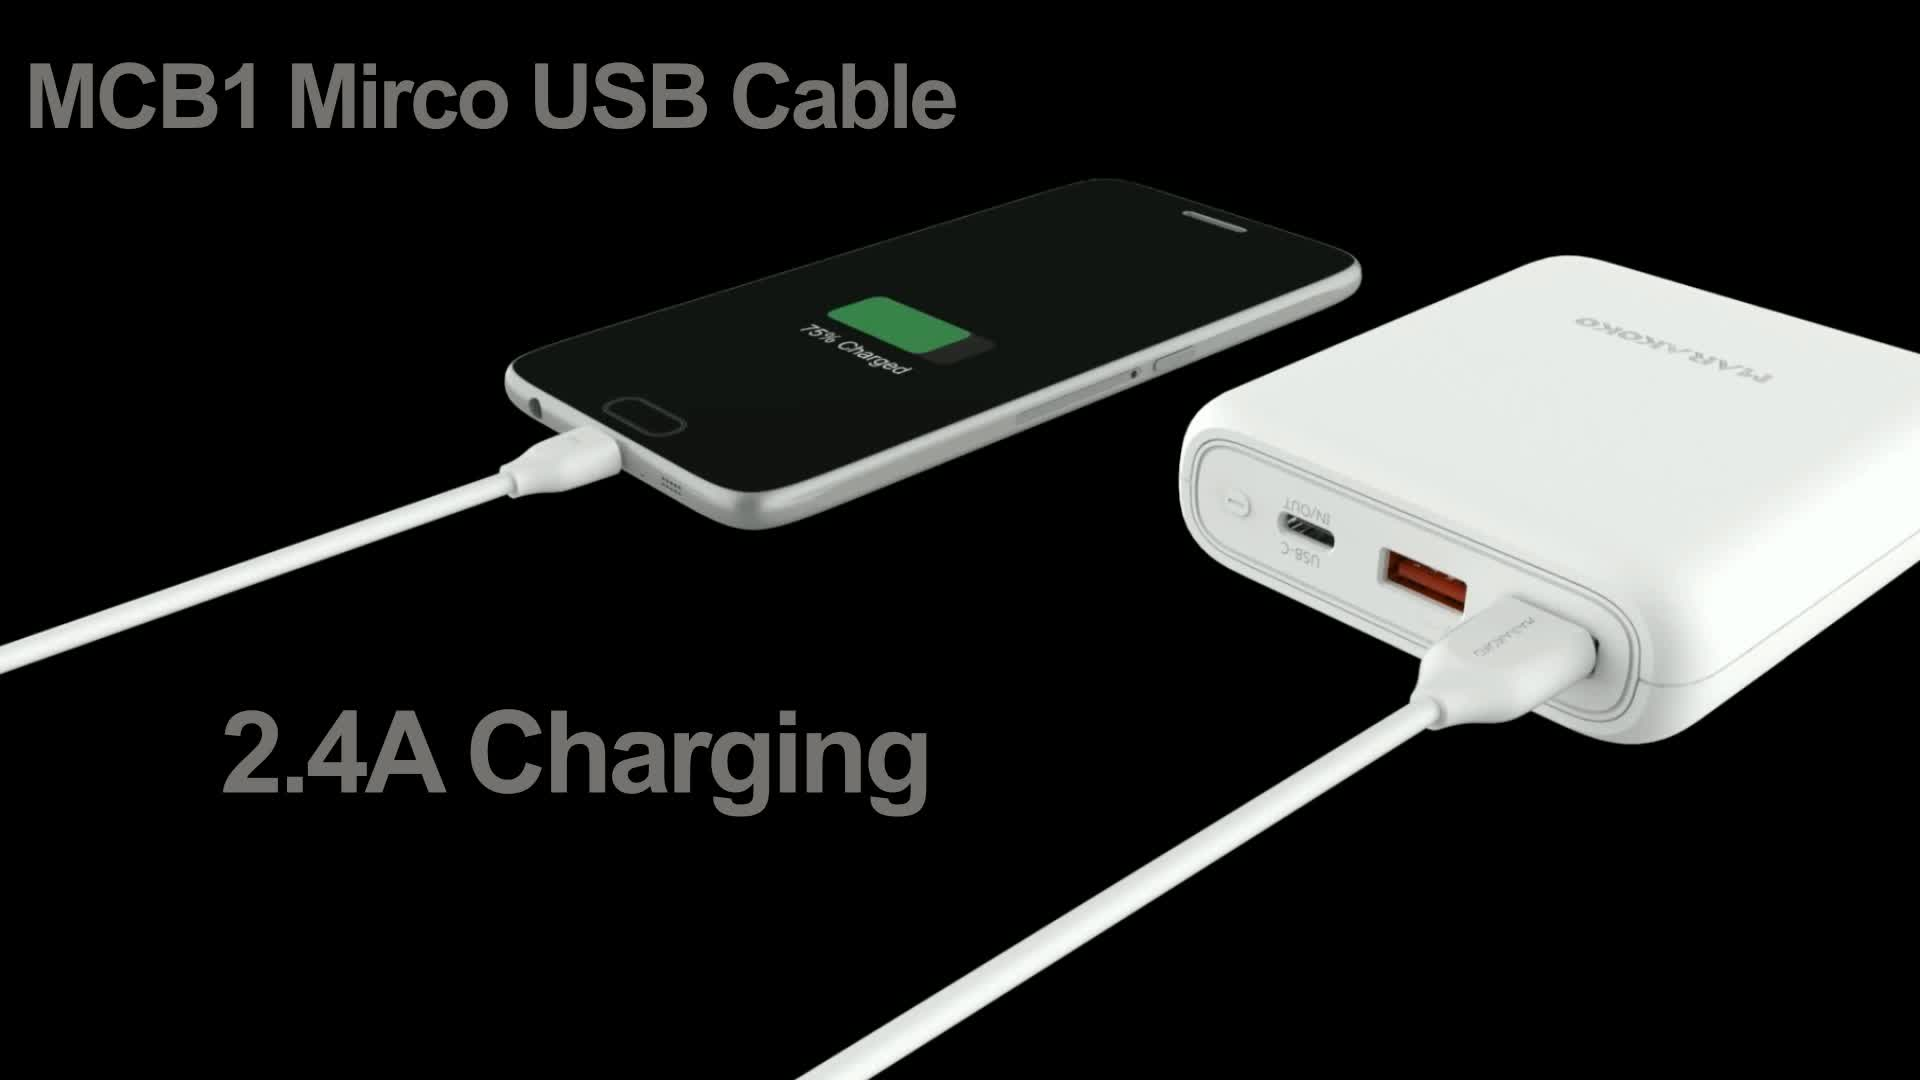 Marakoko MCB1 Micro USB 2.0 Cable 2m 6.6ft Android 2.4A Charging and Micro USB Data Cable